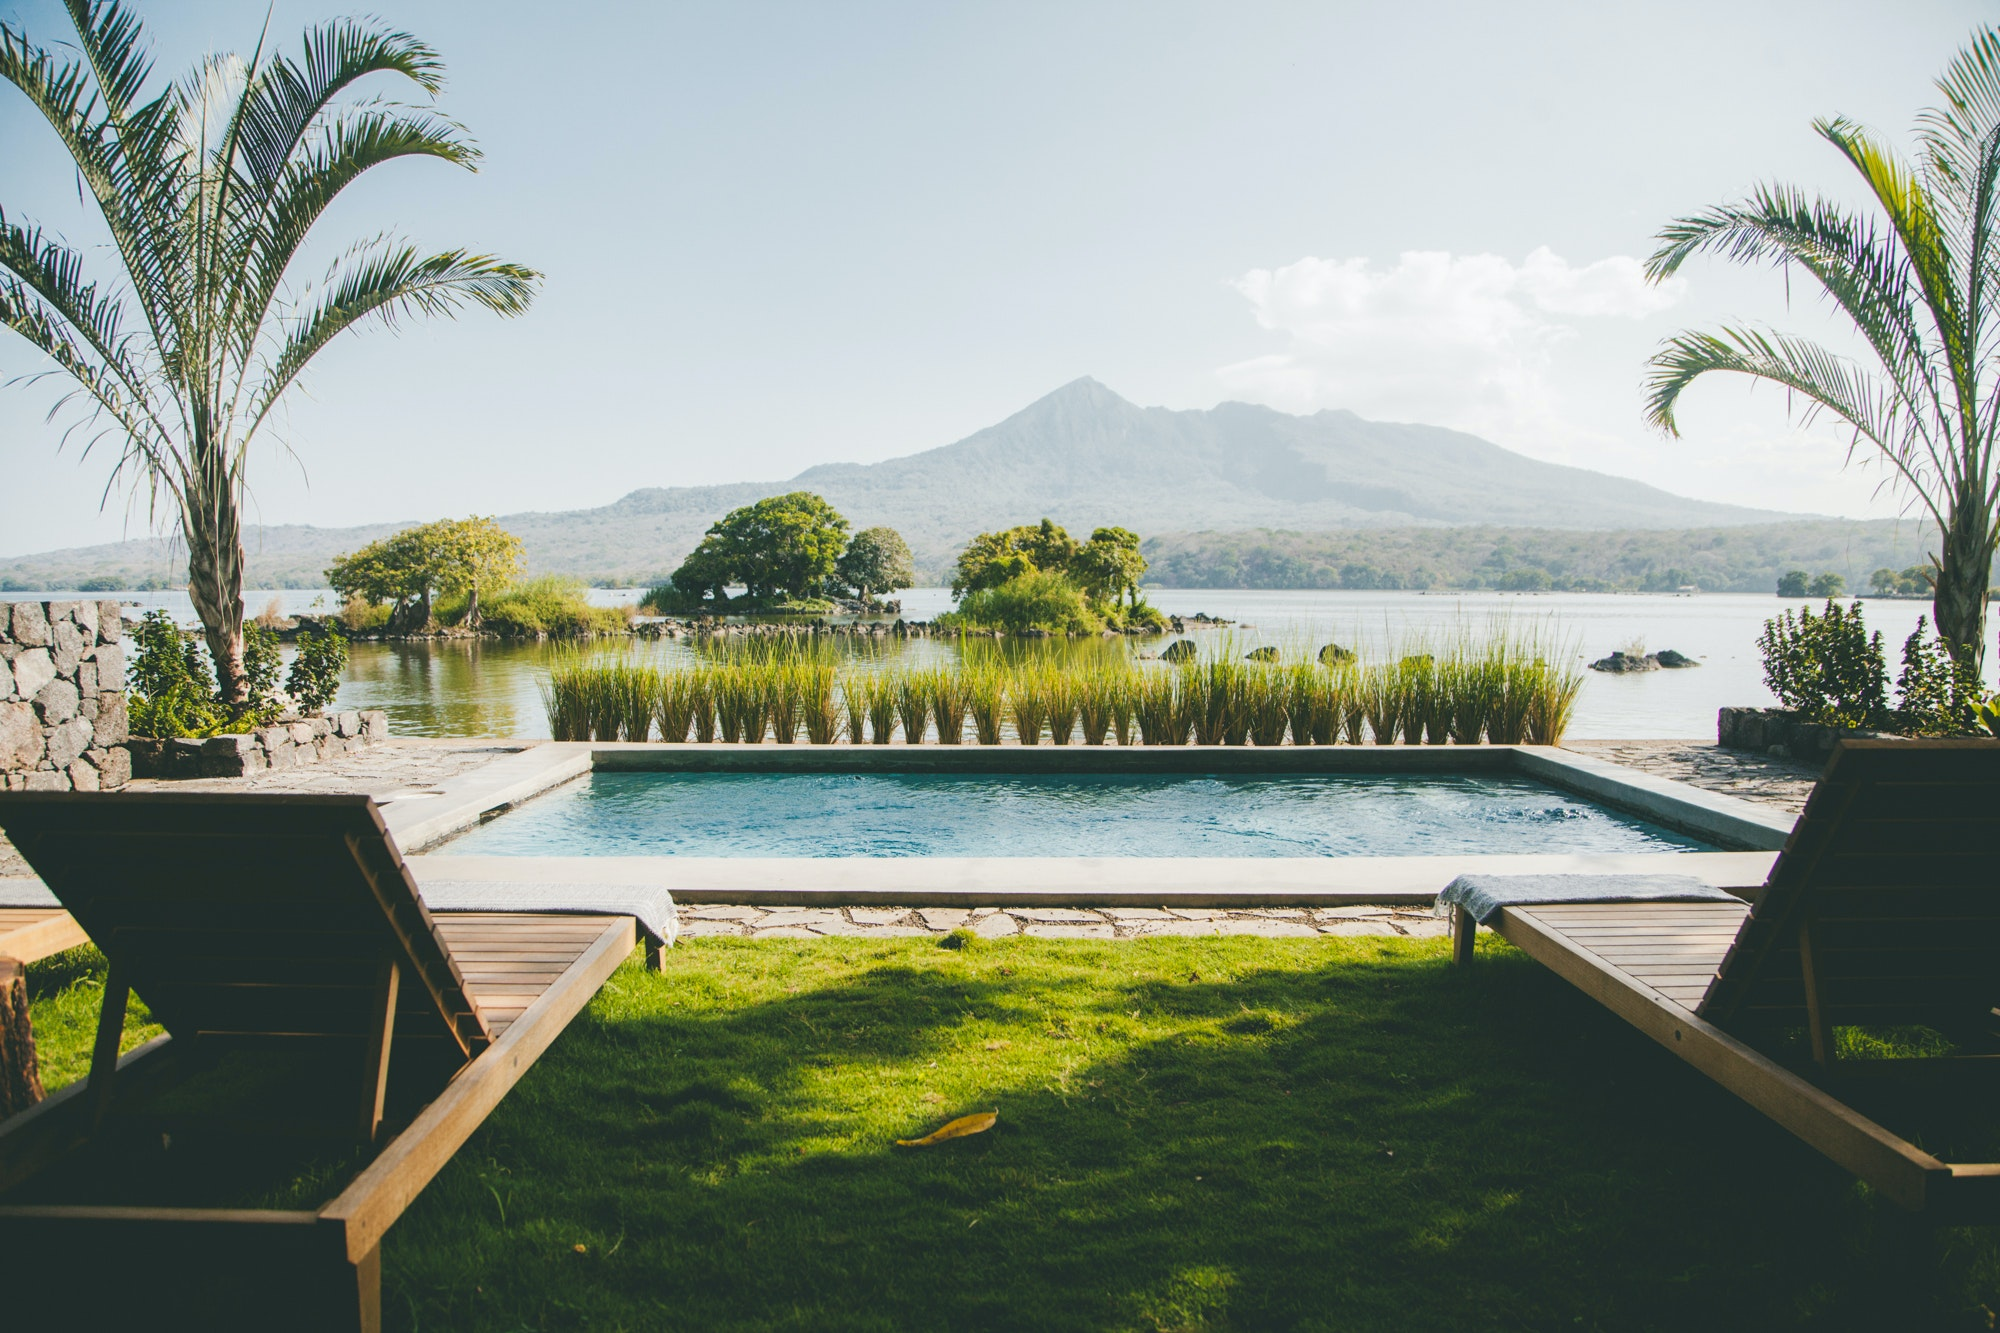 The Nicaraguan Islands You'll Never Want to Leave